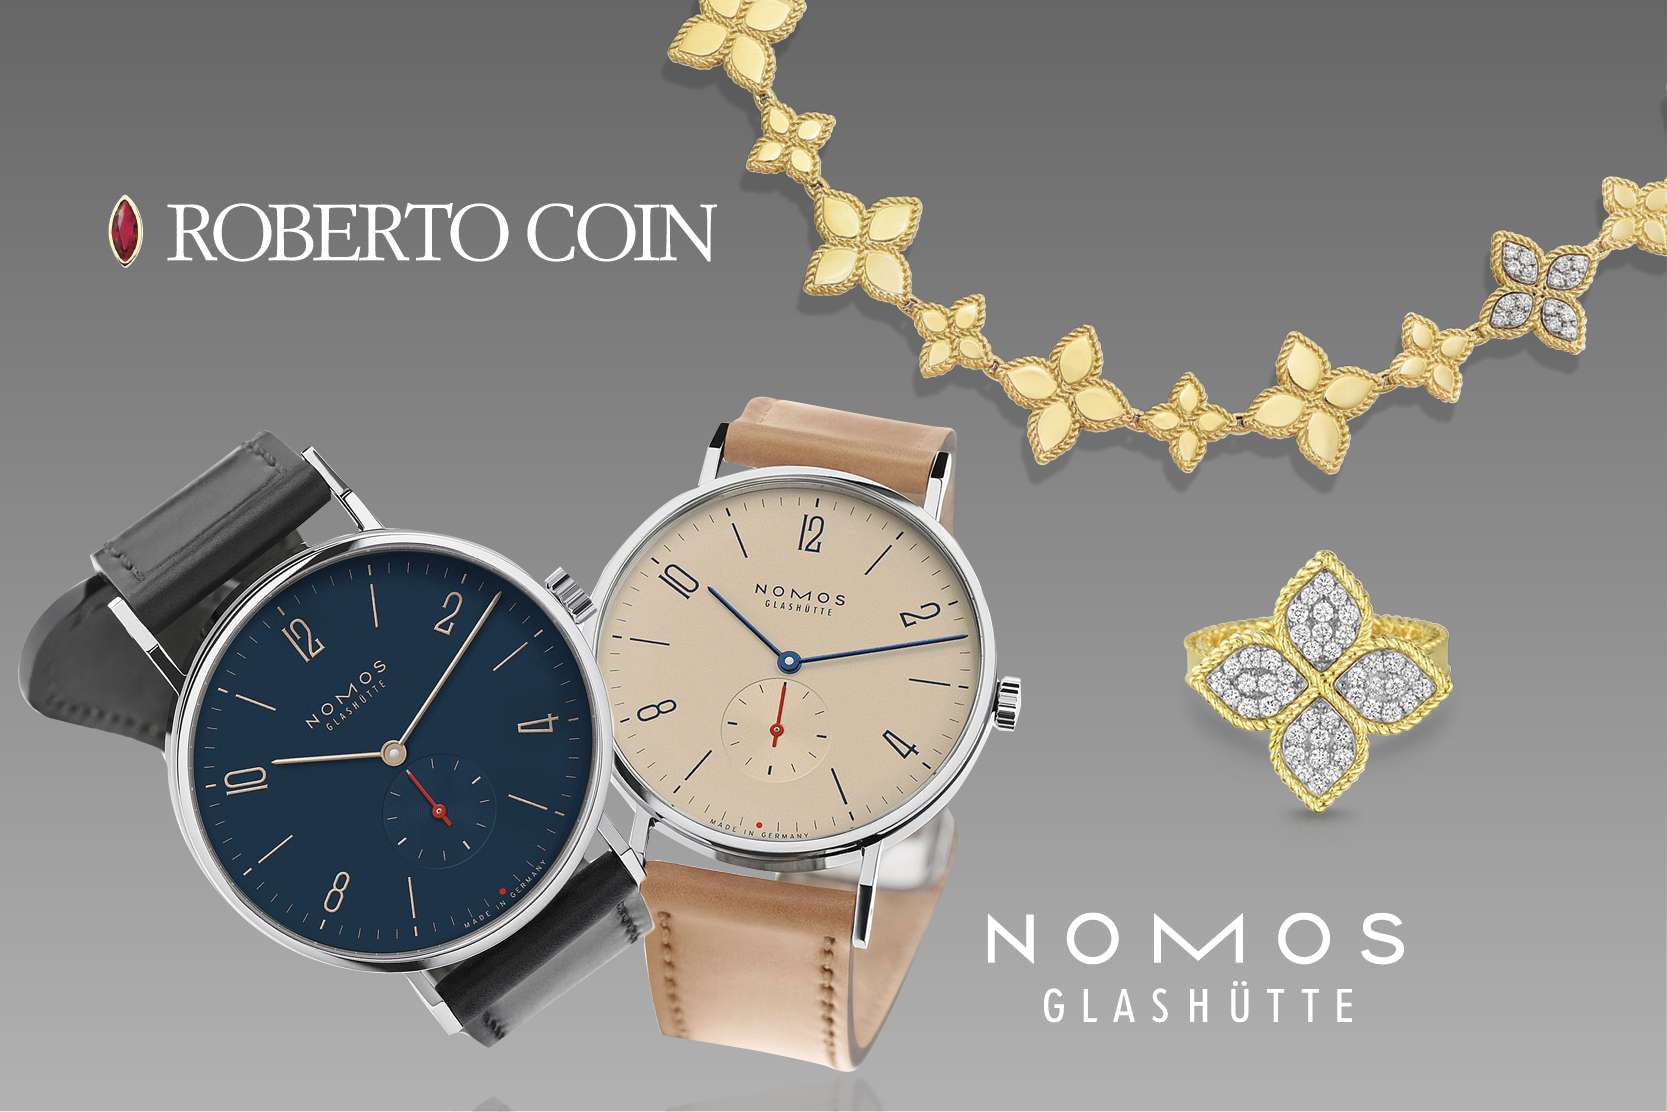 Watch & Scotch featuring Nomos and Roberto Coin